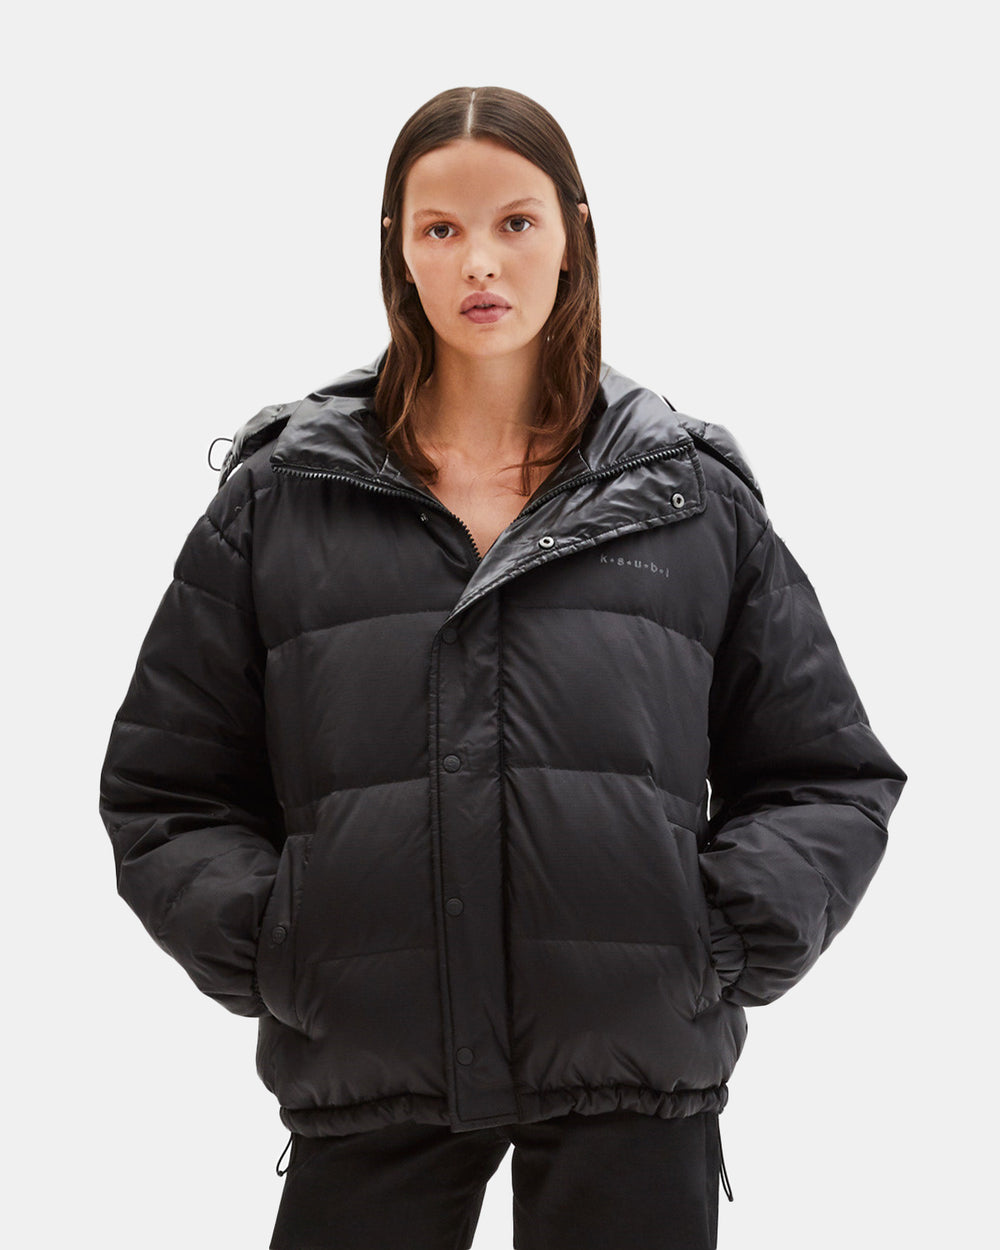 Ksubi - Women's Flashback Puffer Jacket (Black)